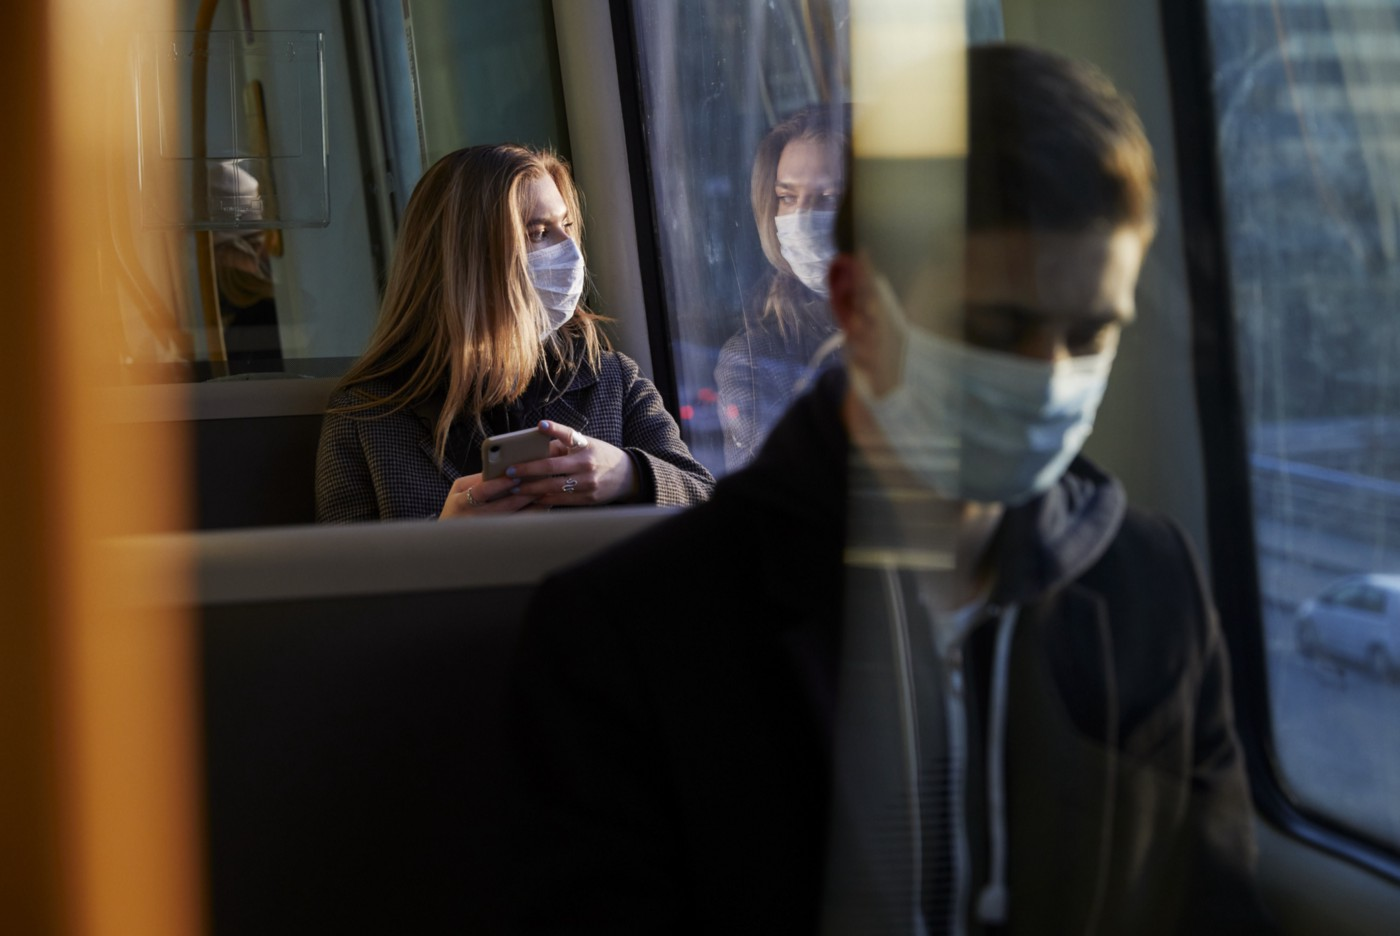 Young people on train wearing face masks.